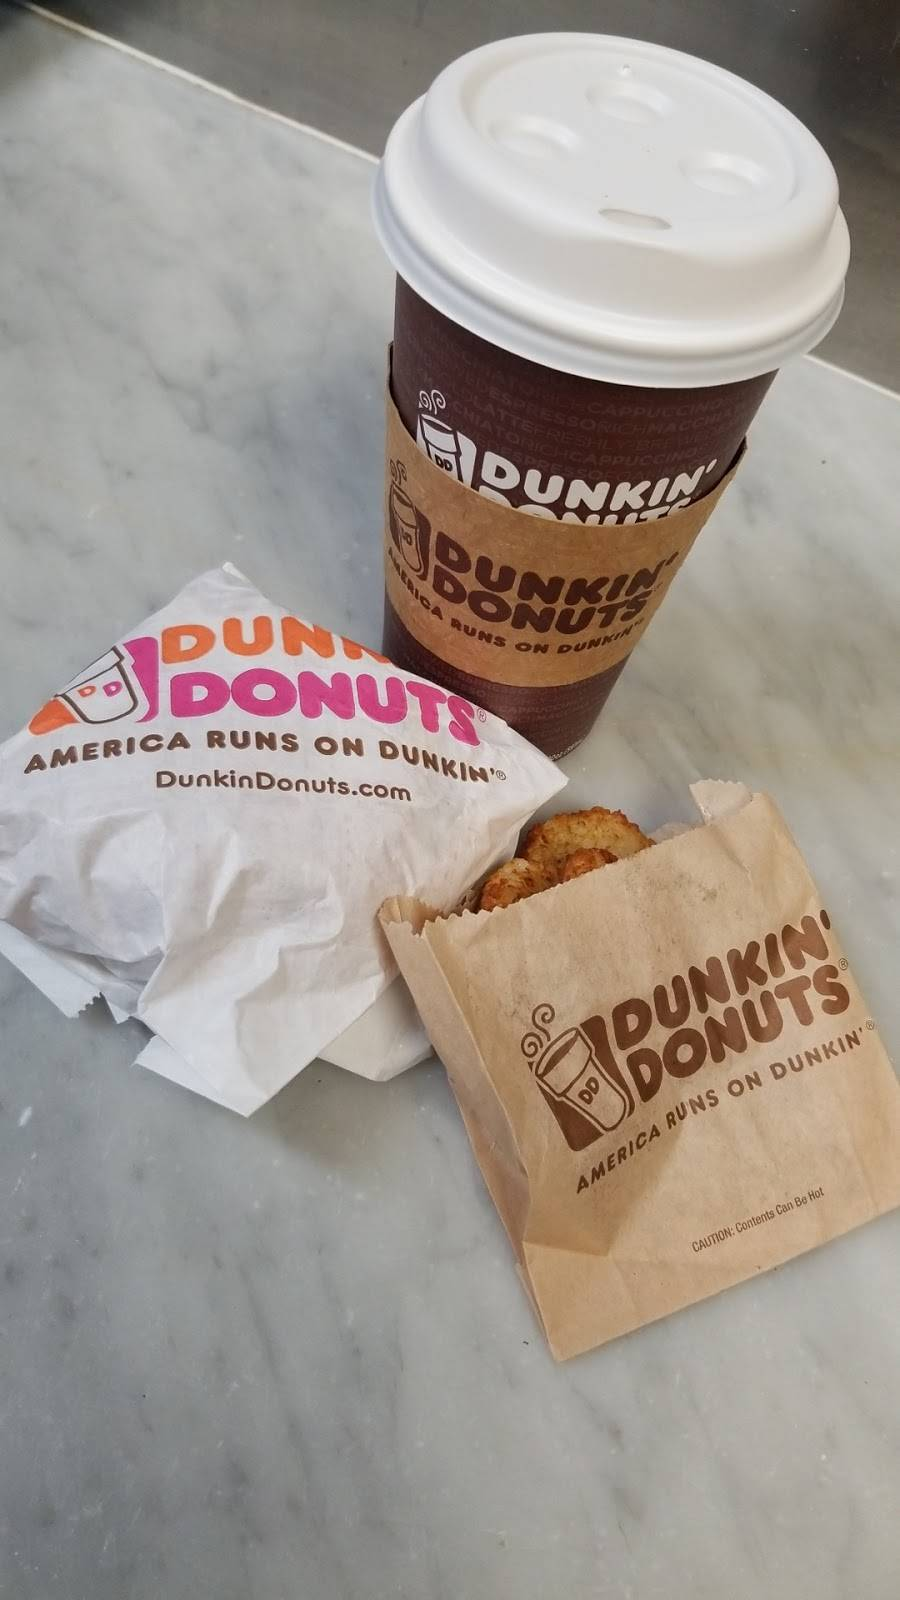 Dunkin Donuts   cafe   101 Fort Dix St, Wrightstown, NJ 08562, USA   6097323238 OR +1 609-732-3238